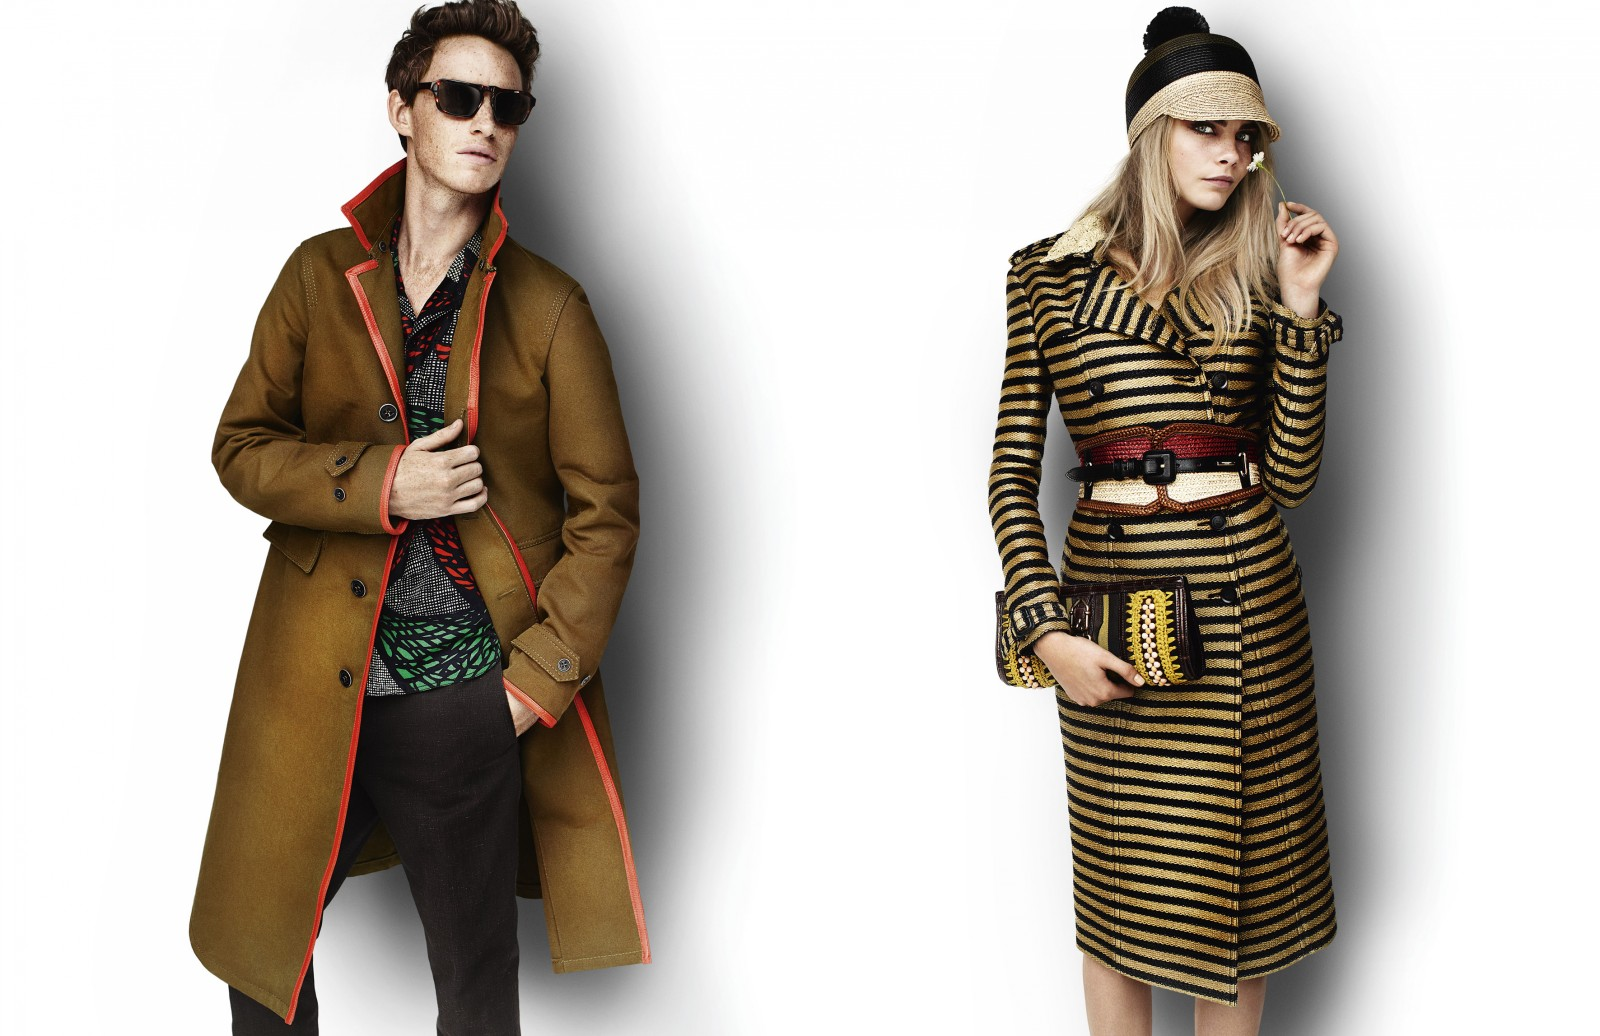 Burberry Spring-Summer 2012: Mario Testino Again to Make Your Own